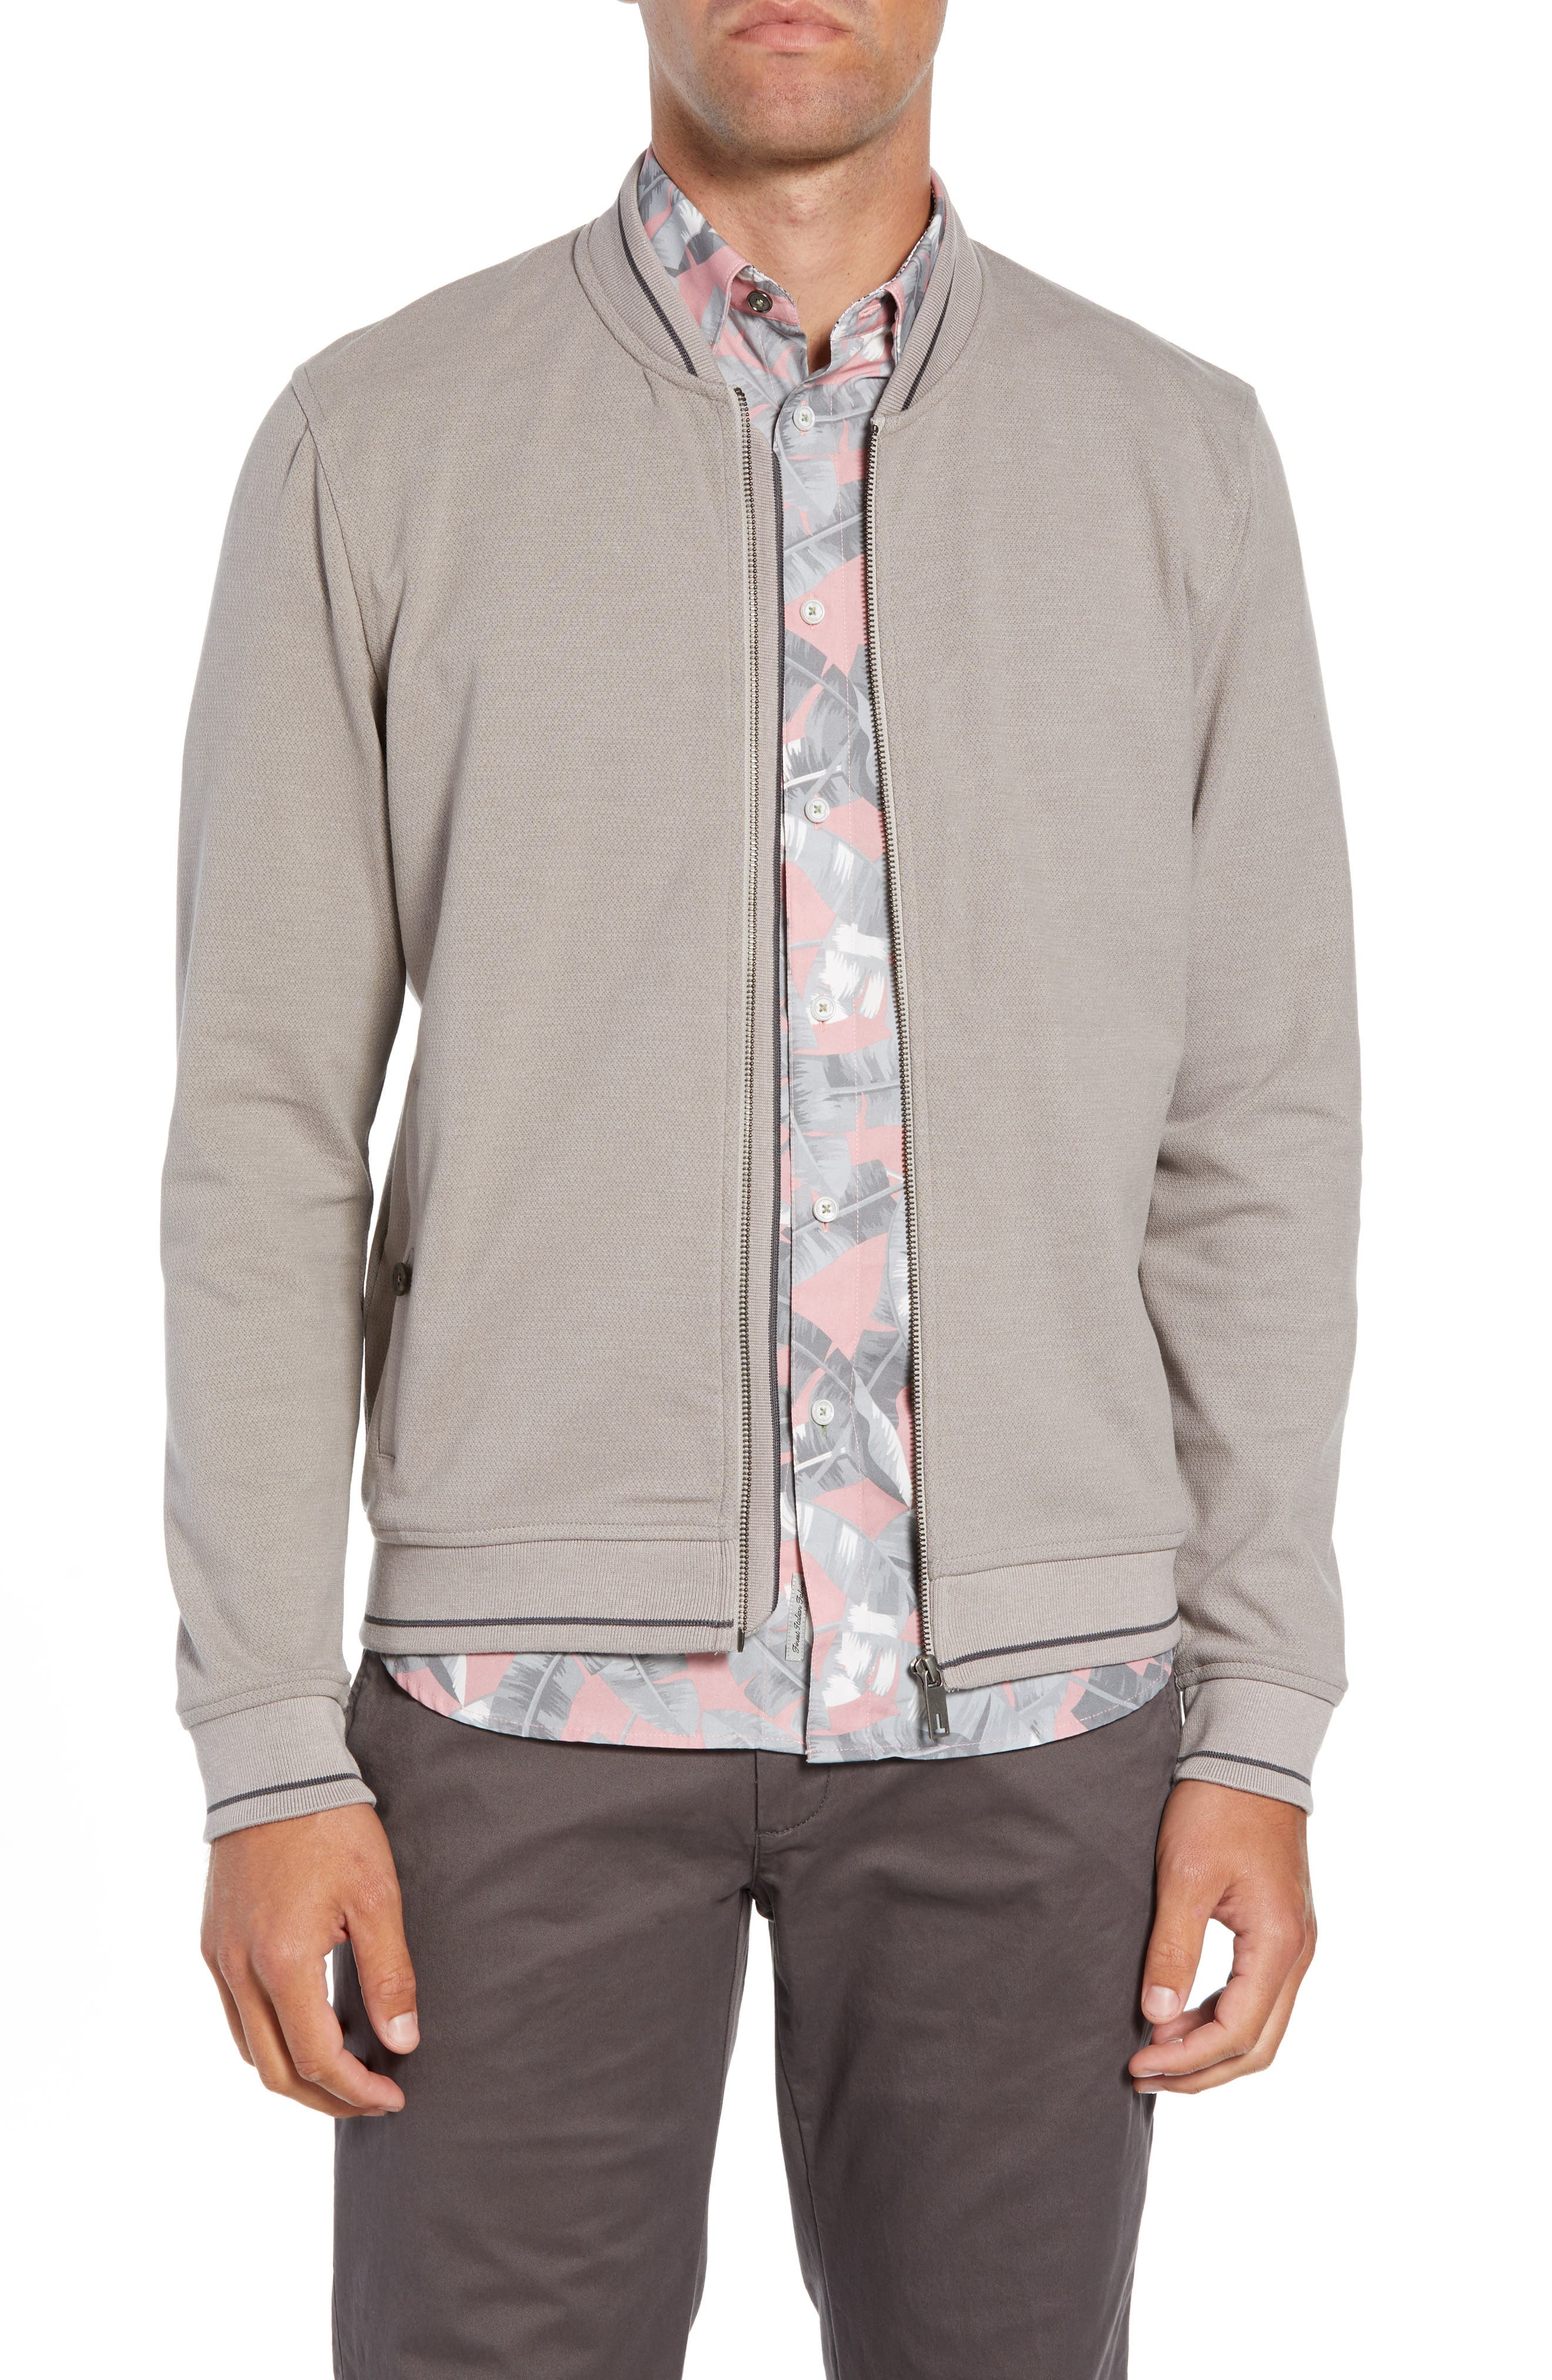 Chicpea Jersey Bomber Jacket,                         Main,                         color, 250